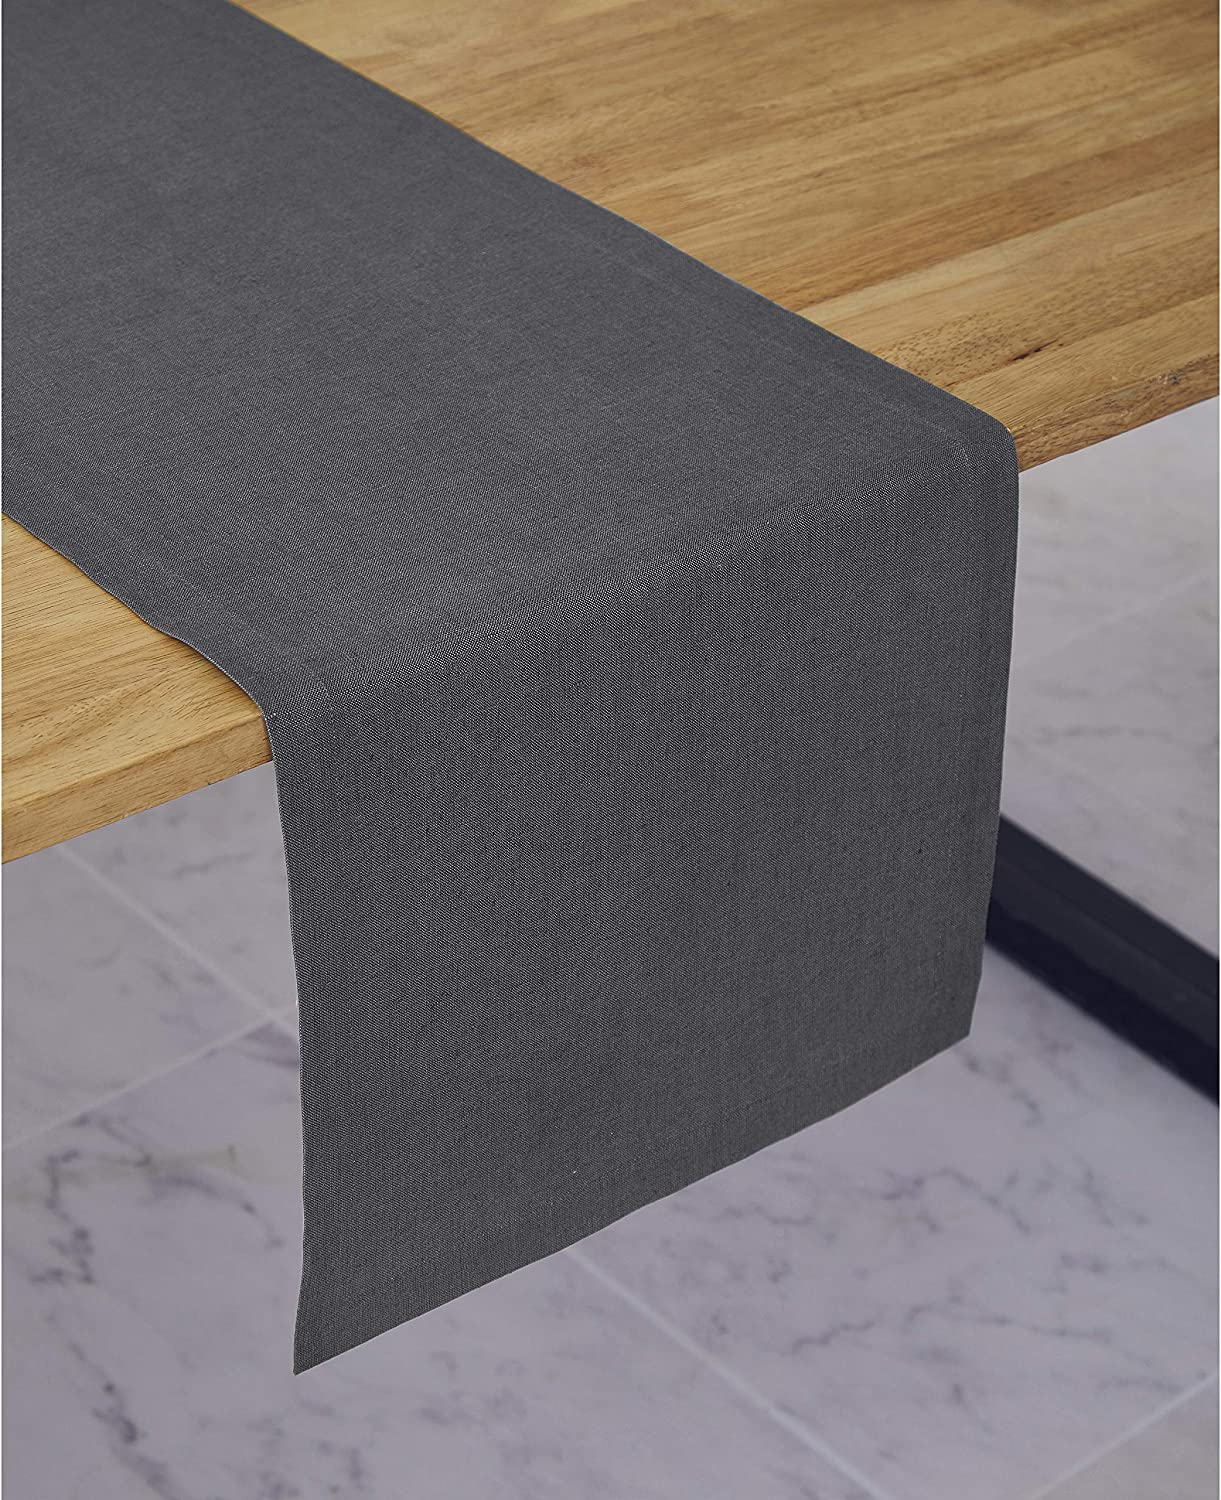 Solino Home Medium Weight Linen Max 75% OFF - 100% Runner Pure Table Sales results No. 1